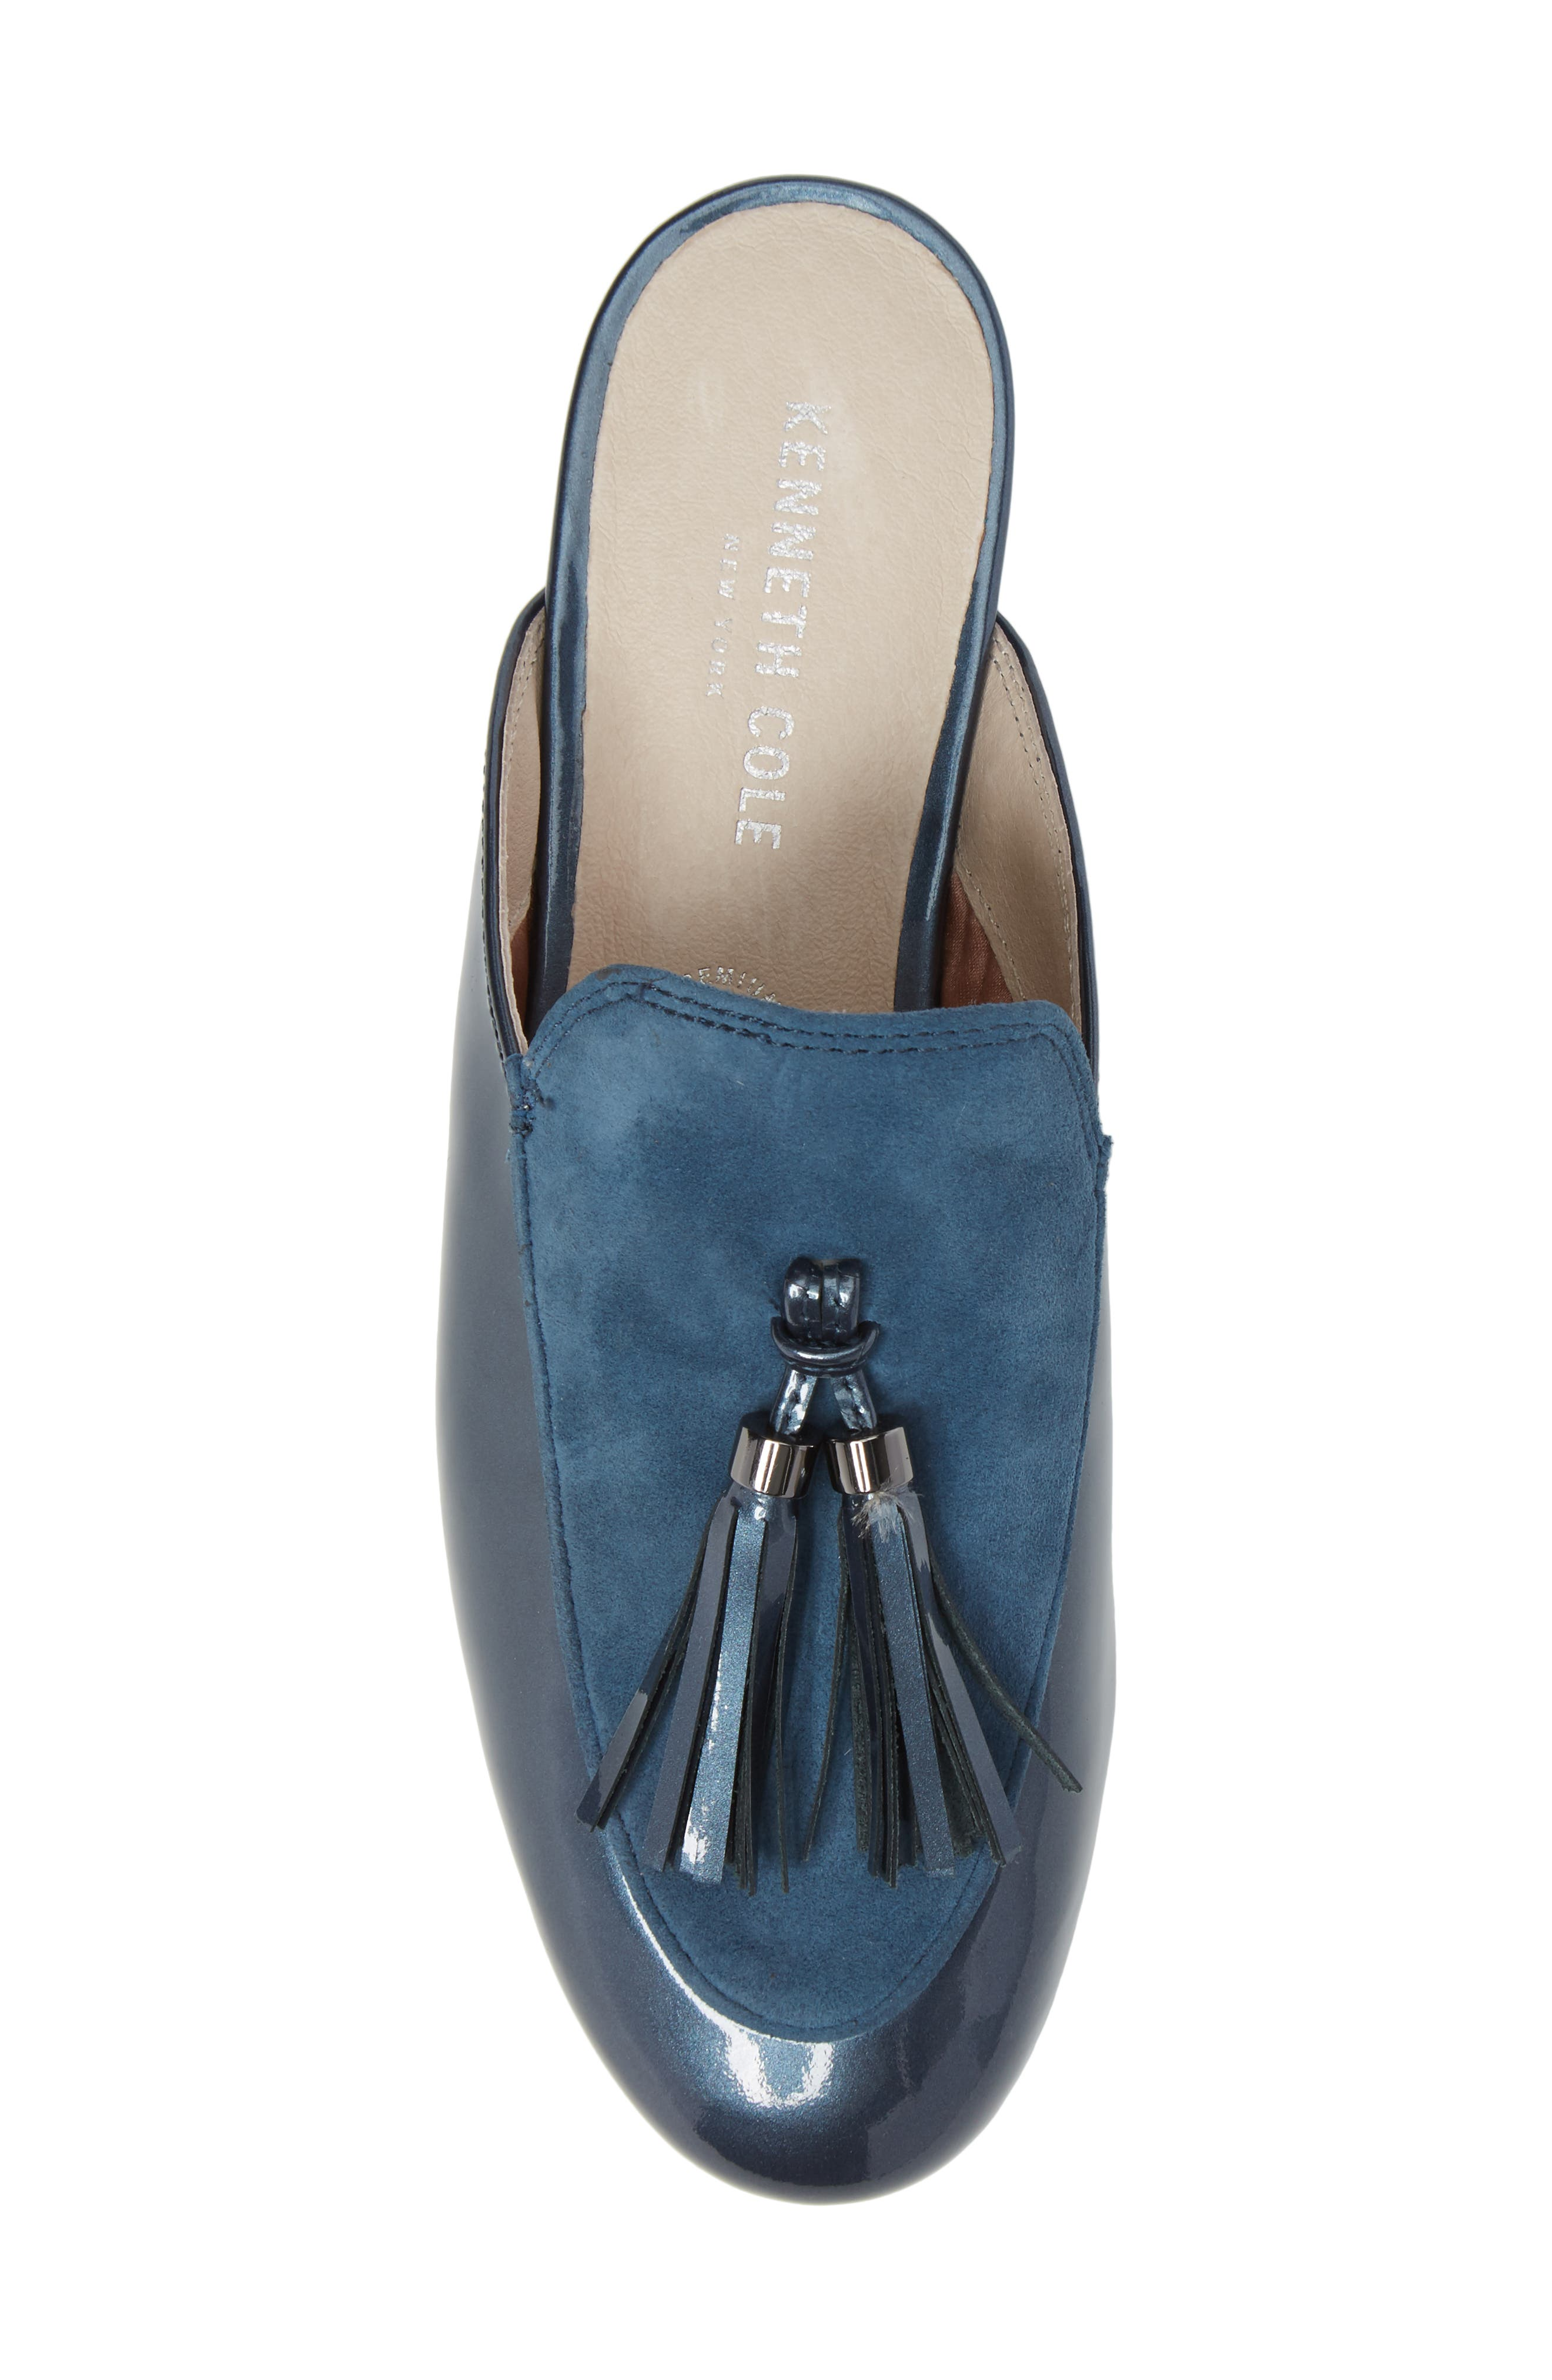 Whinnie Loafer Mule,                             Alternate thumbnail 5, color,                             Indigo Patent Leather